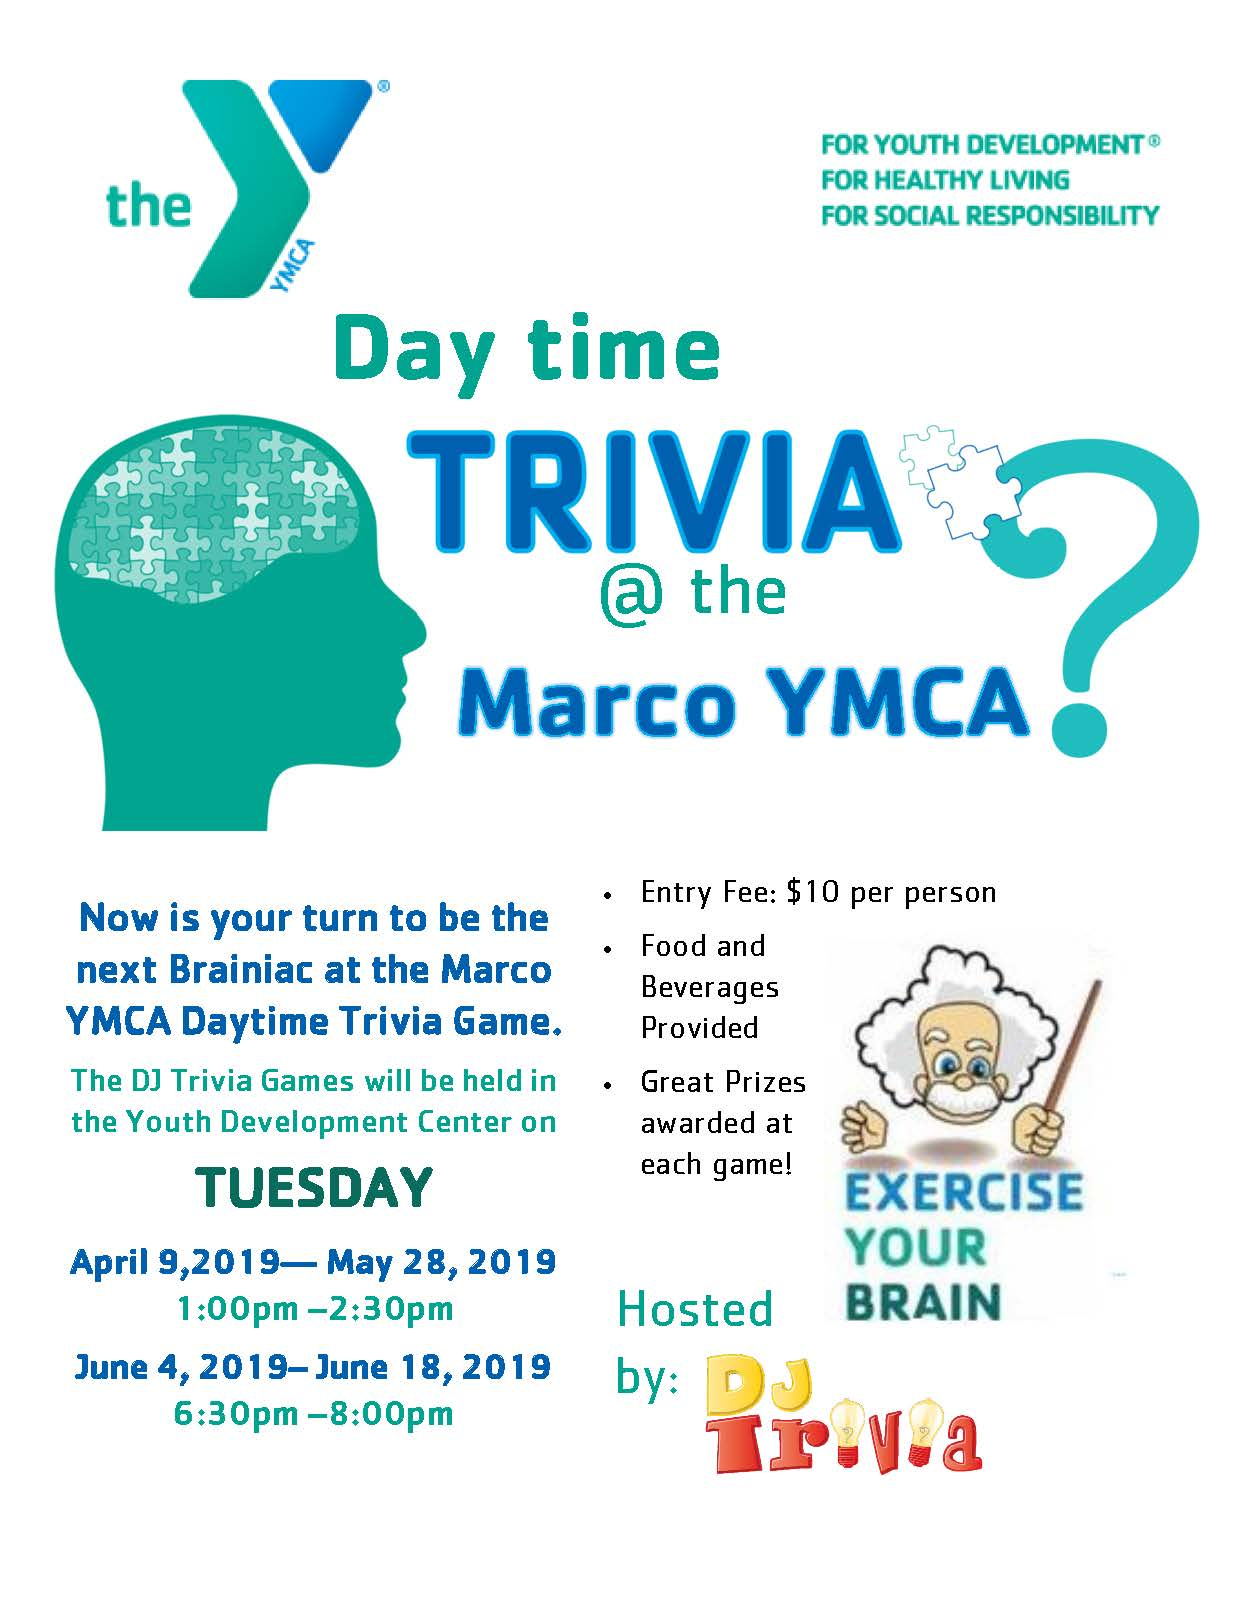 YMCA Day Time Trivia